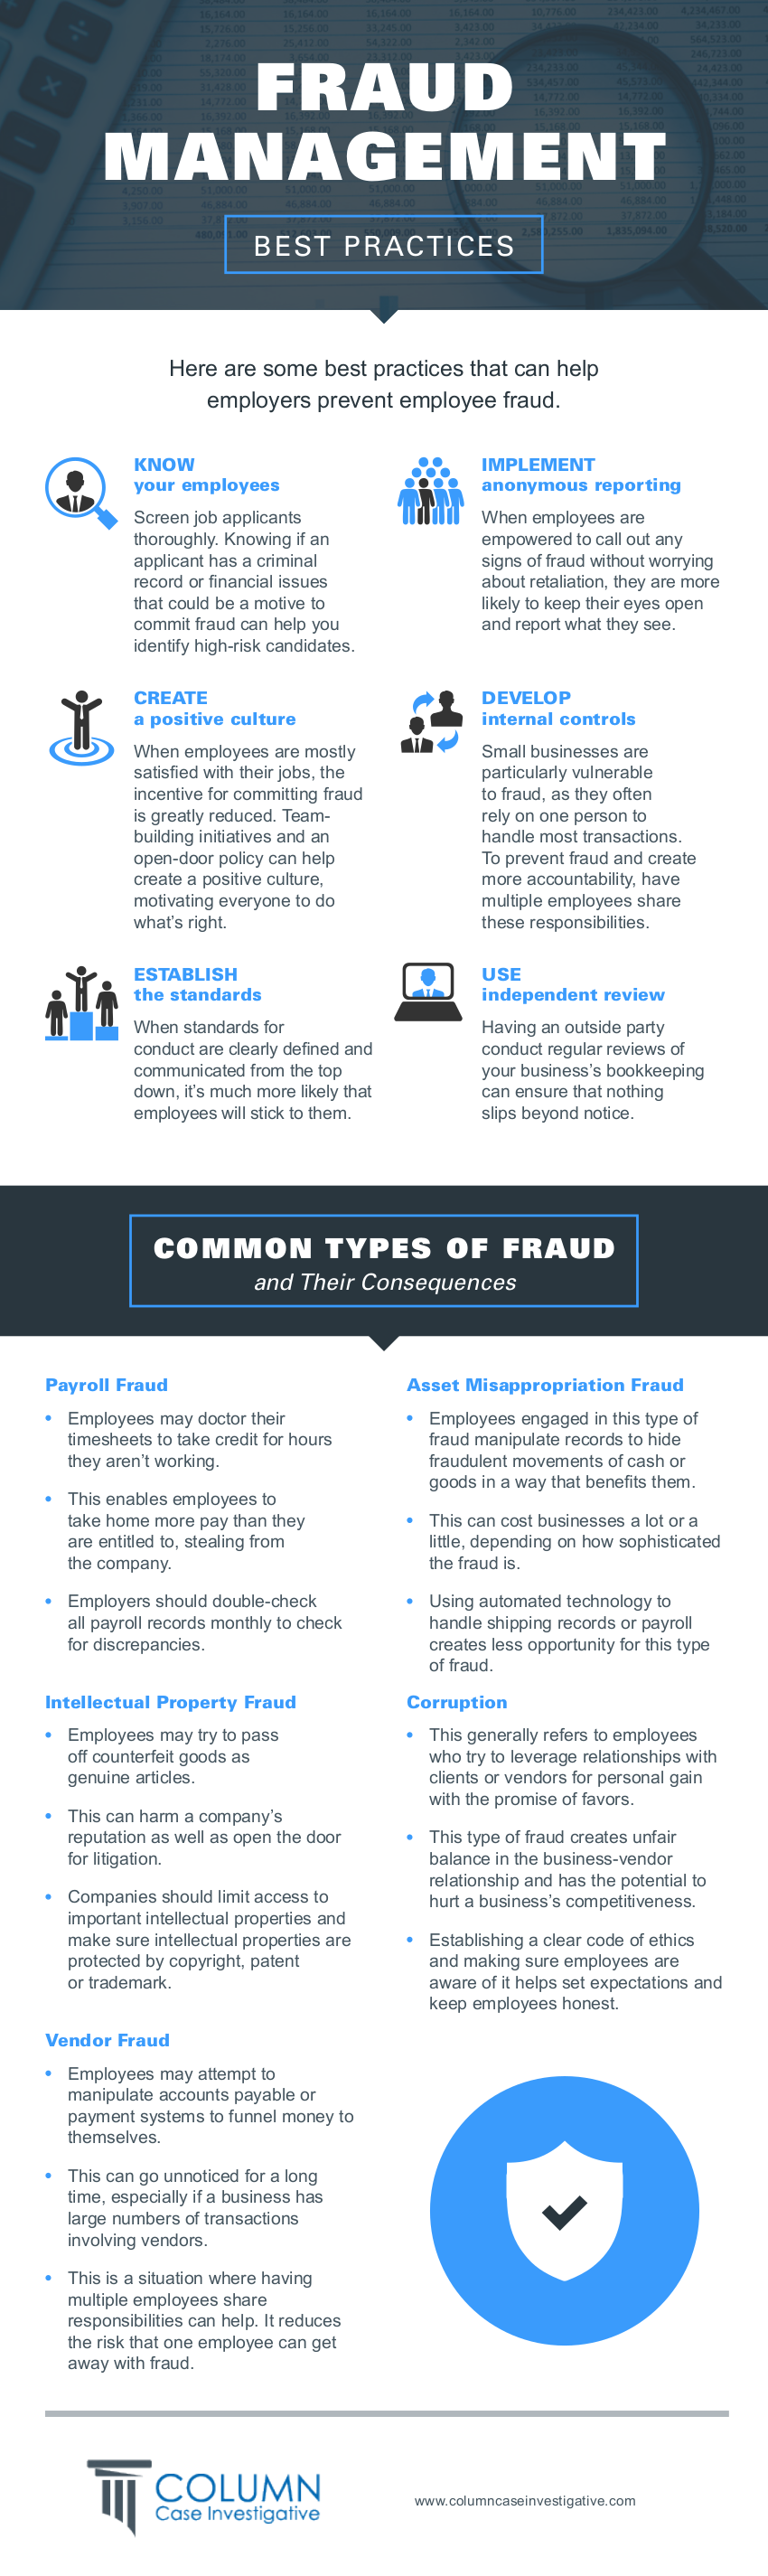 6 Best Practices to Avoid Fraud in the Workplace [Infographic]